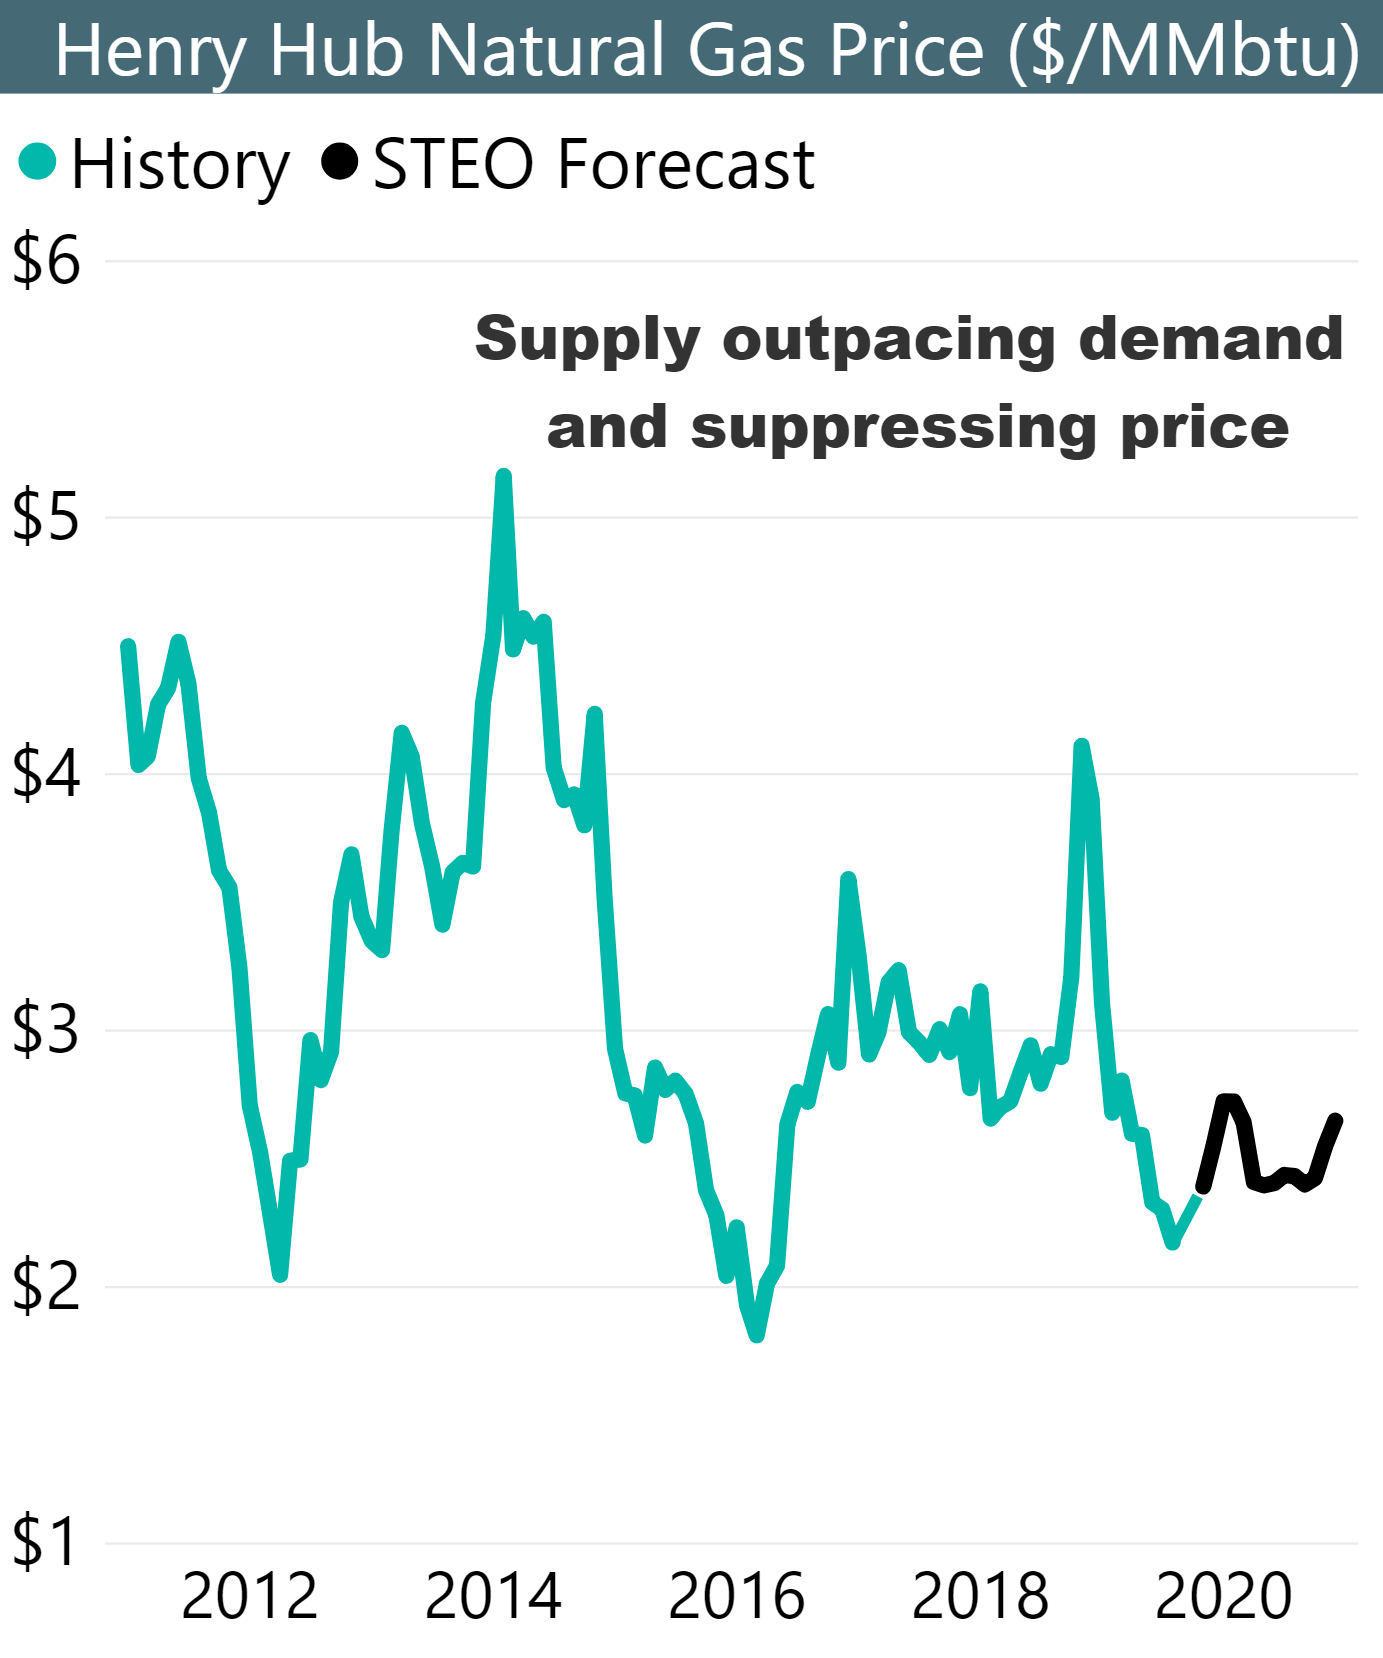 Natural gas price pressured by oversupply